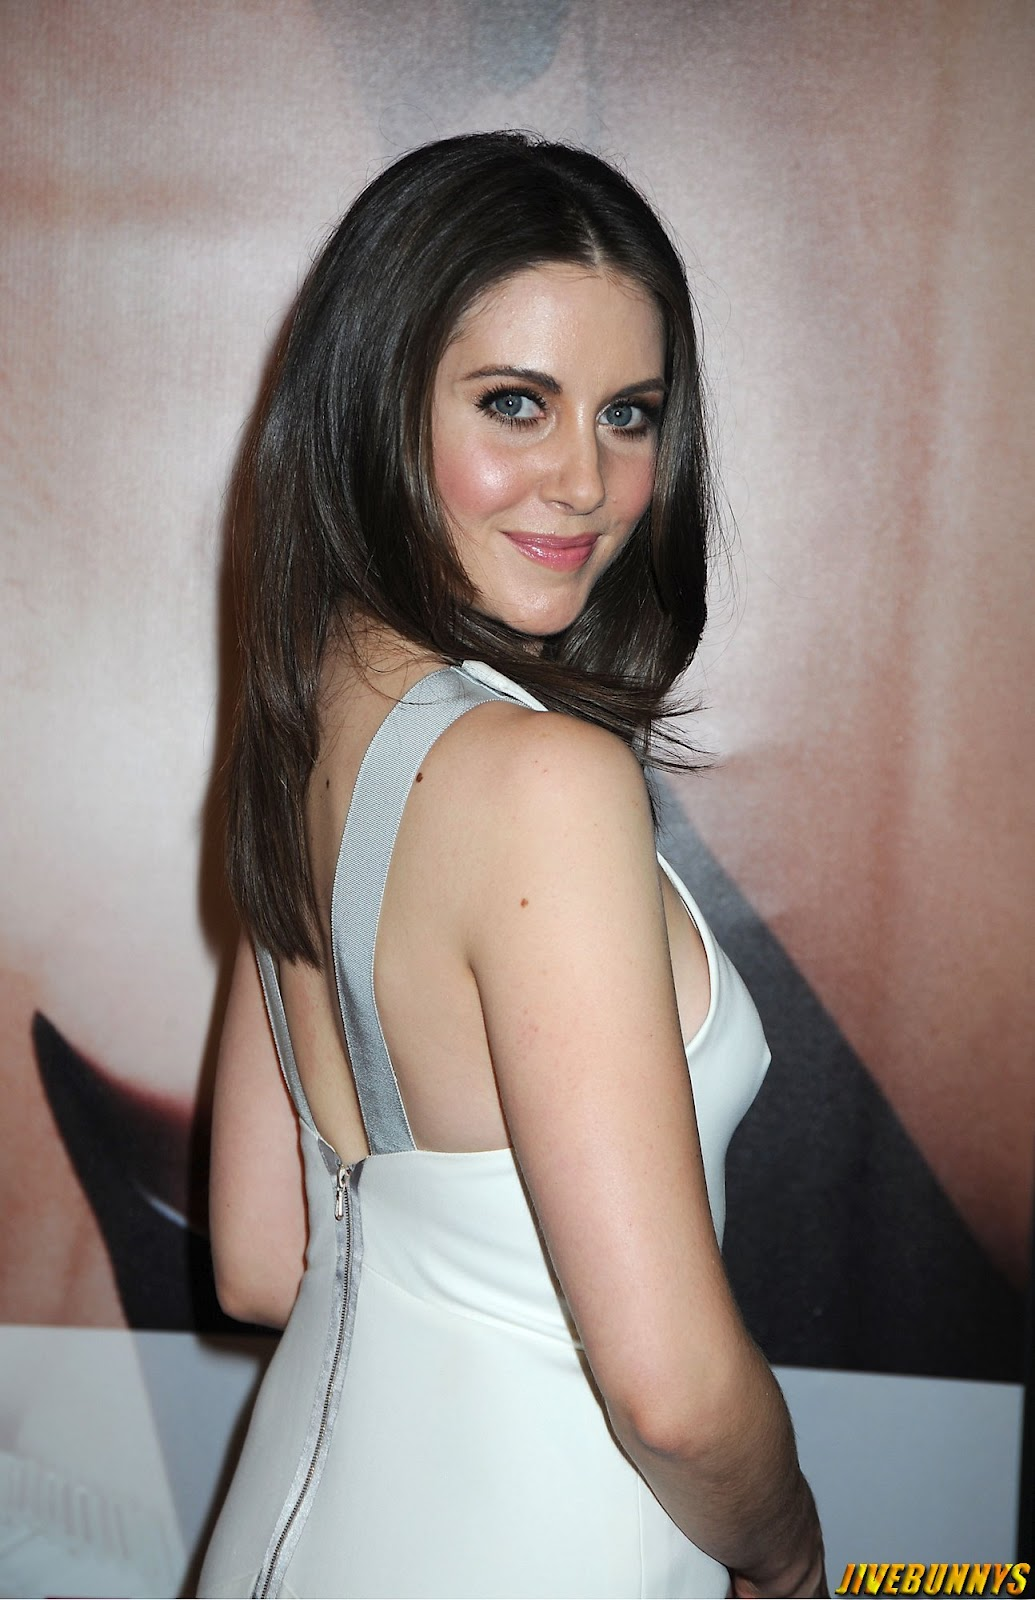 alison brie hot - photo #22